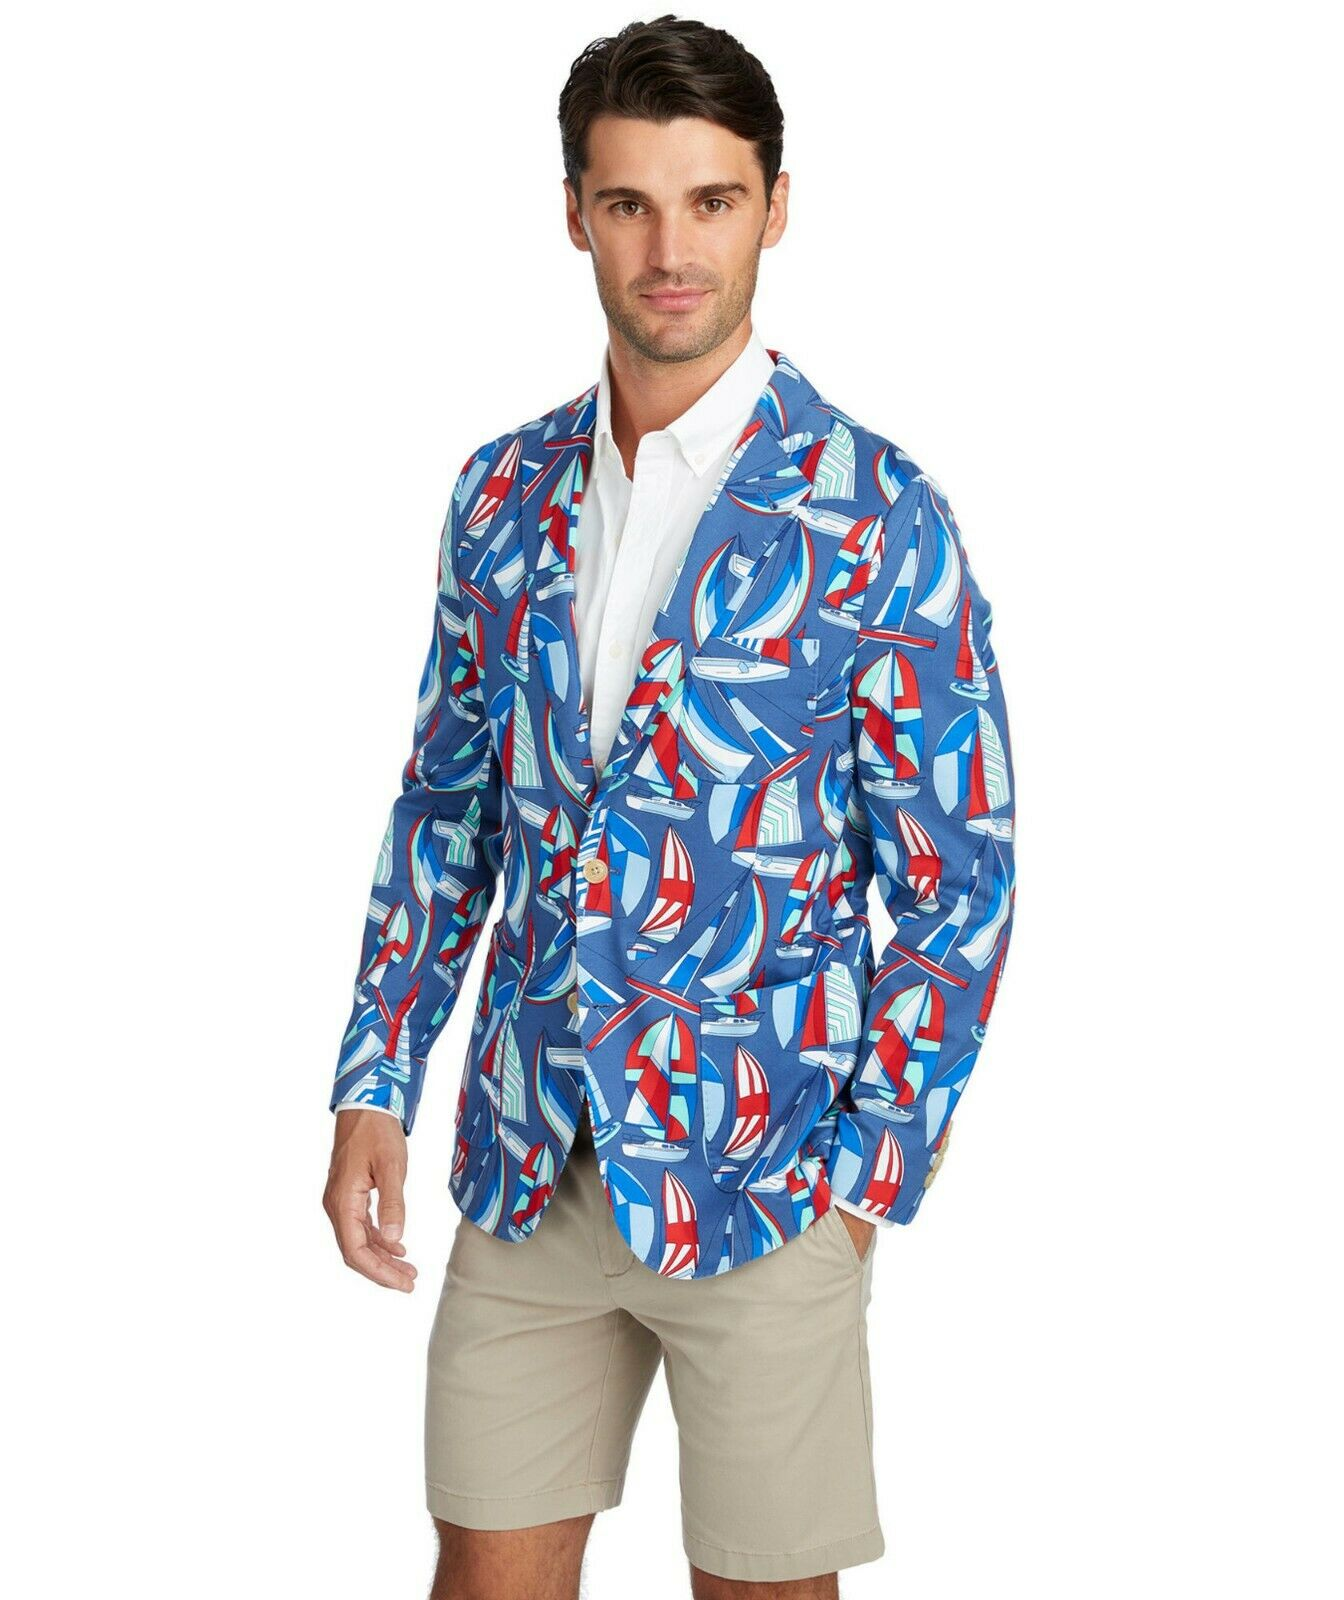 Vineyard Vines - Spin Around The Island Blazer - Sailboat - 1J0162 - Size  44R